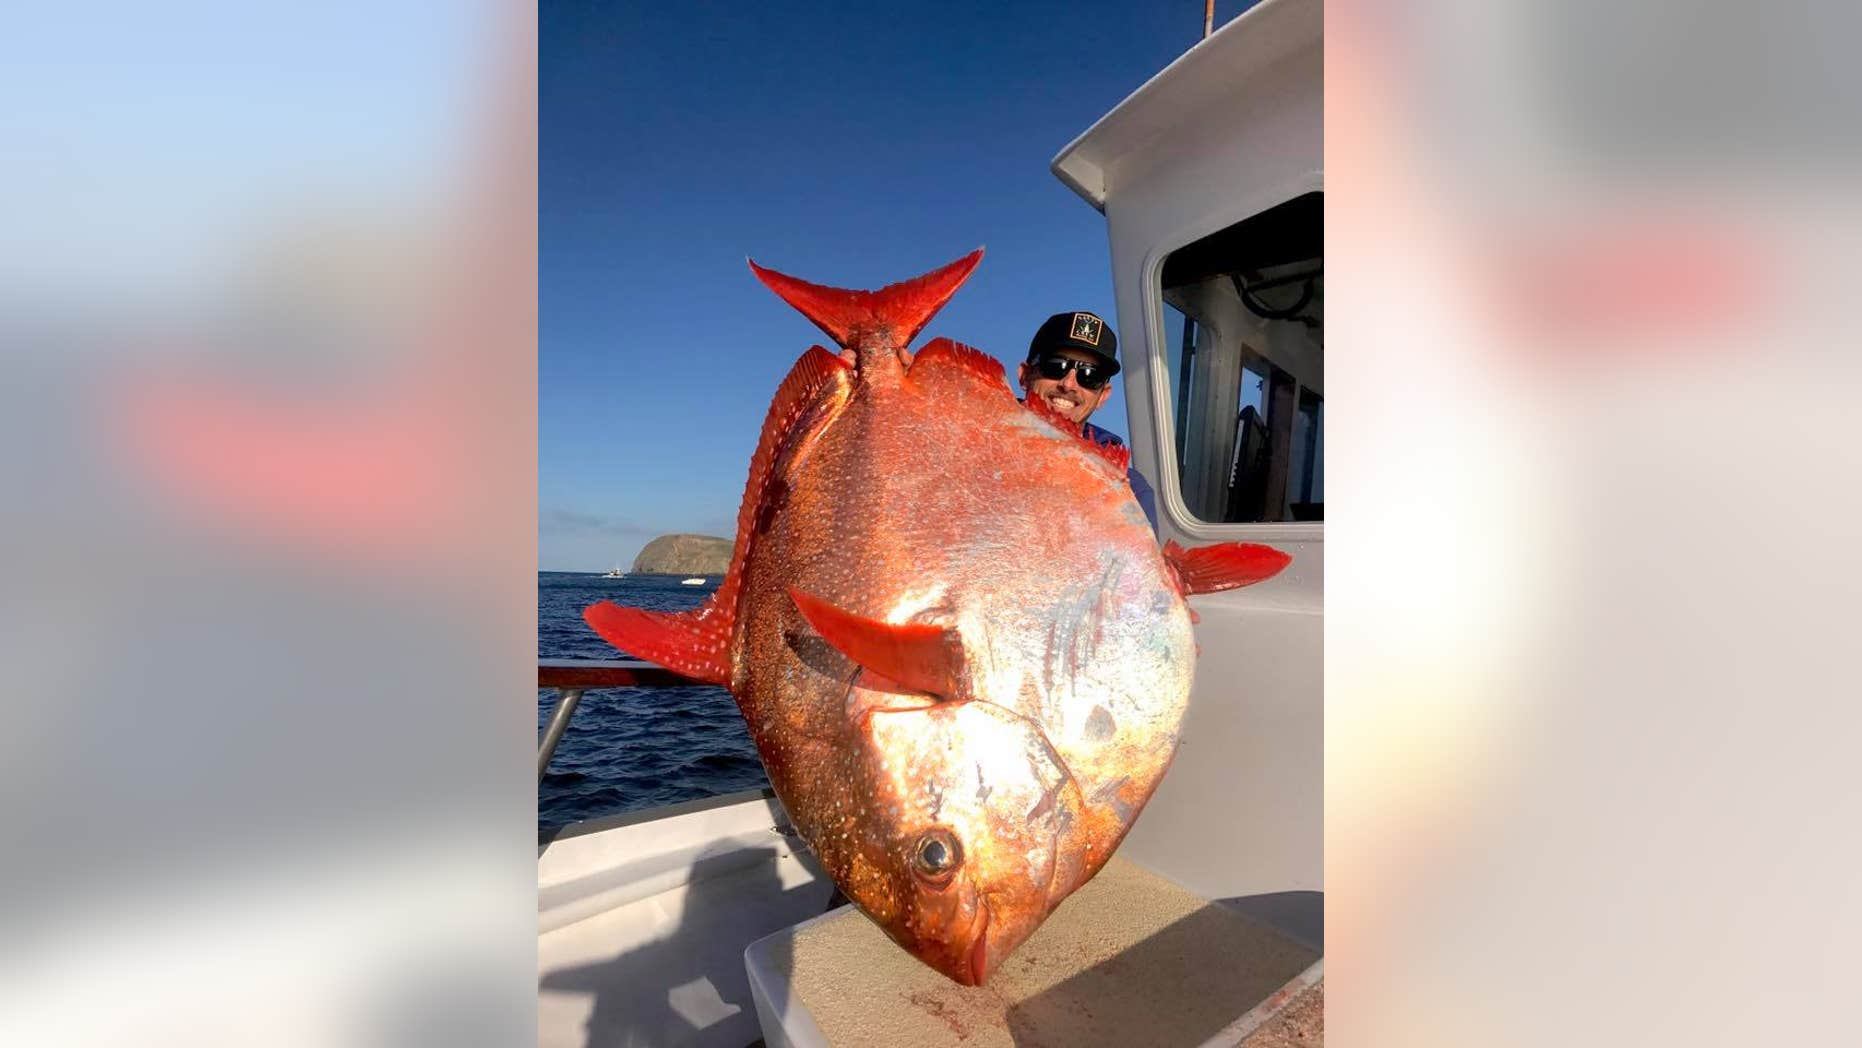 Shawn Steward of Oxnard, Calif., caught a rare 90-pound opah off Southern California.